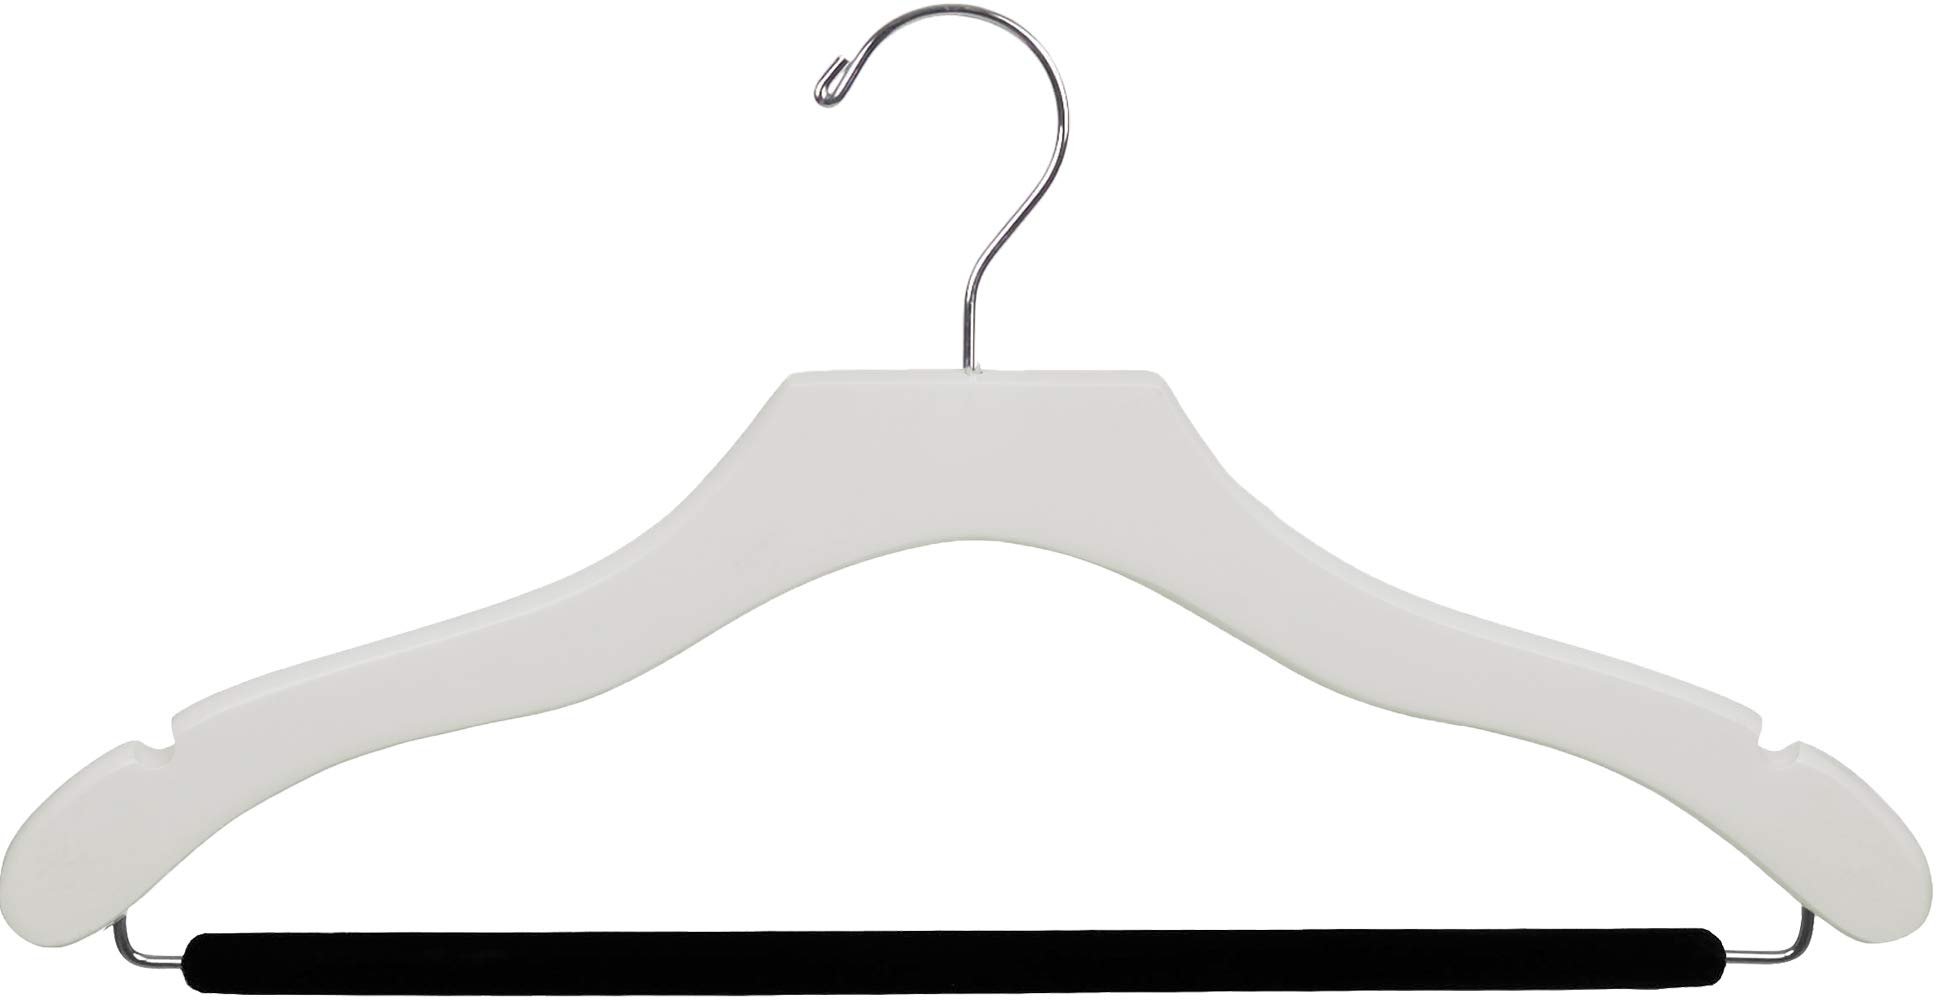 The Great American Hanger Company Wavy White Wood Suit Hanger w/Velvet Non-Slip Bar, Box of 100 Space Saving 17 Inch Flat Wooden Hangers w/Chrome Swivel Hook & Notches for Shirt Dress or Pants by The Great American Hanger Company (Image #1)